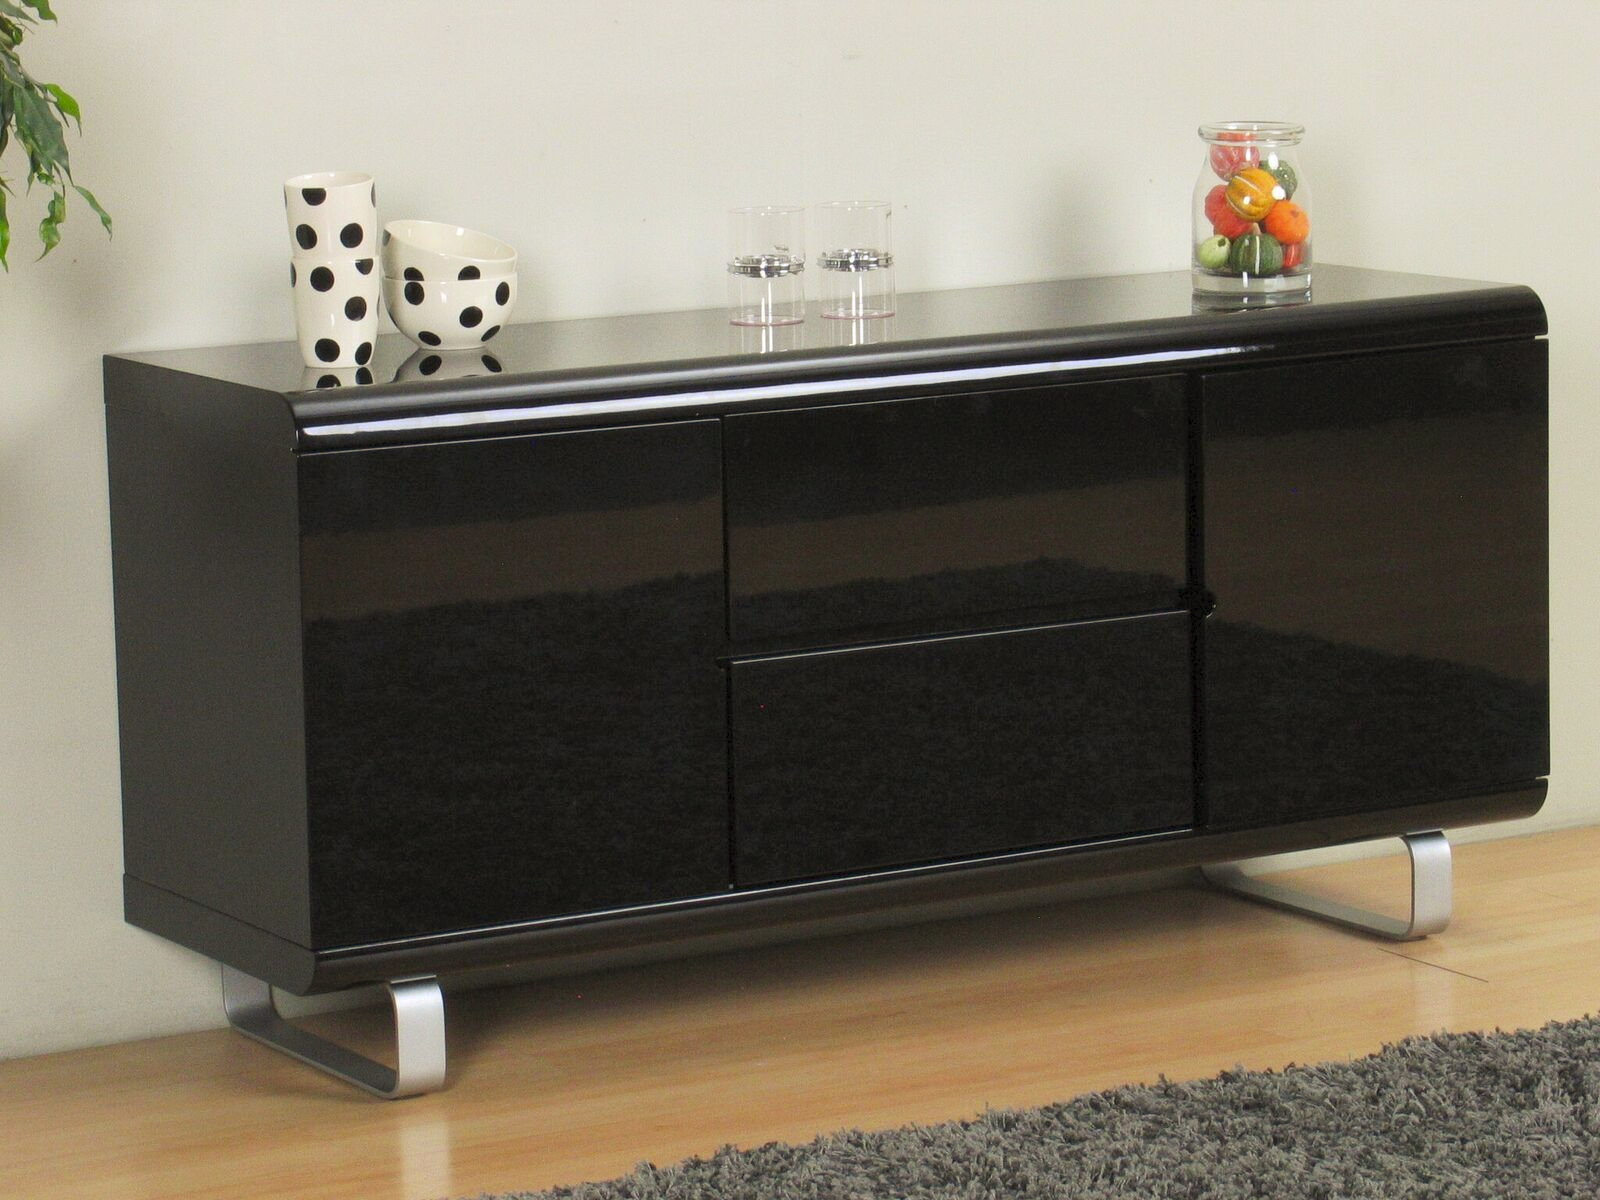 sideboard spacy hochglanz schwarz kommode schubladen schrank highboard m bel wohnen wohnzimmer. Black Bedroom Furniture Sets. Home Design Ideas